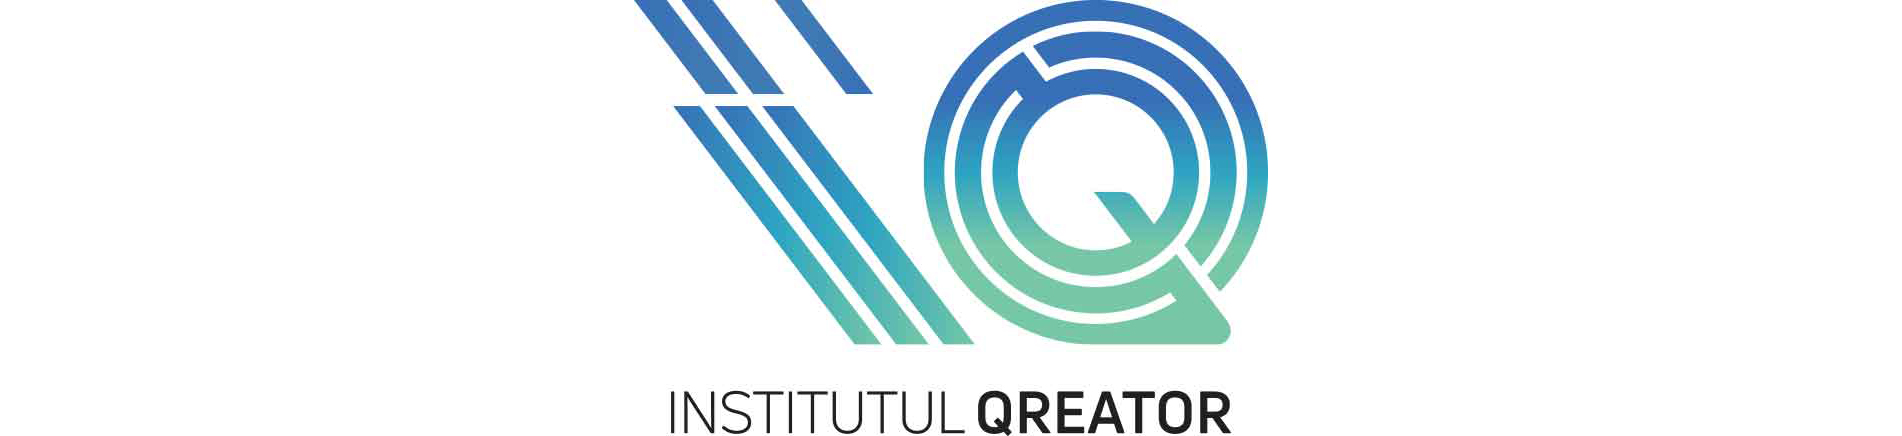 web-lung-Logo-Institutul-Qreator-RGB.jpg